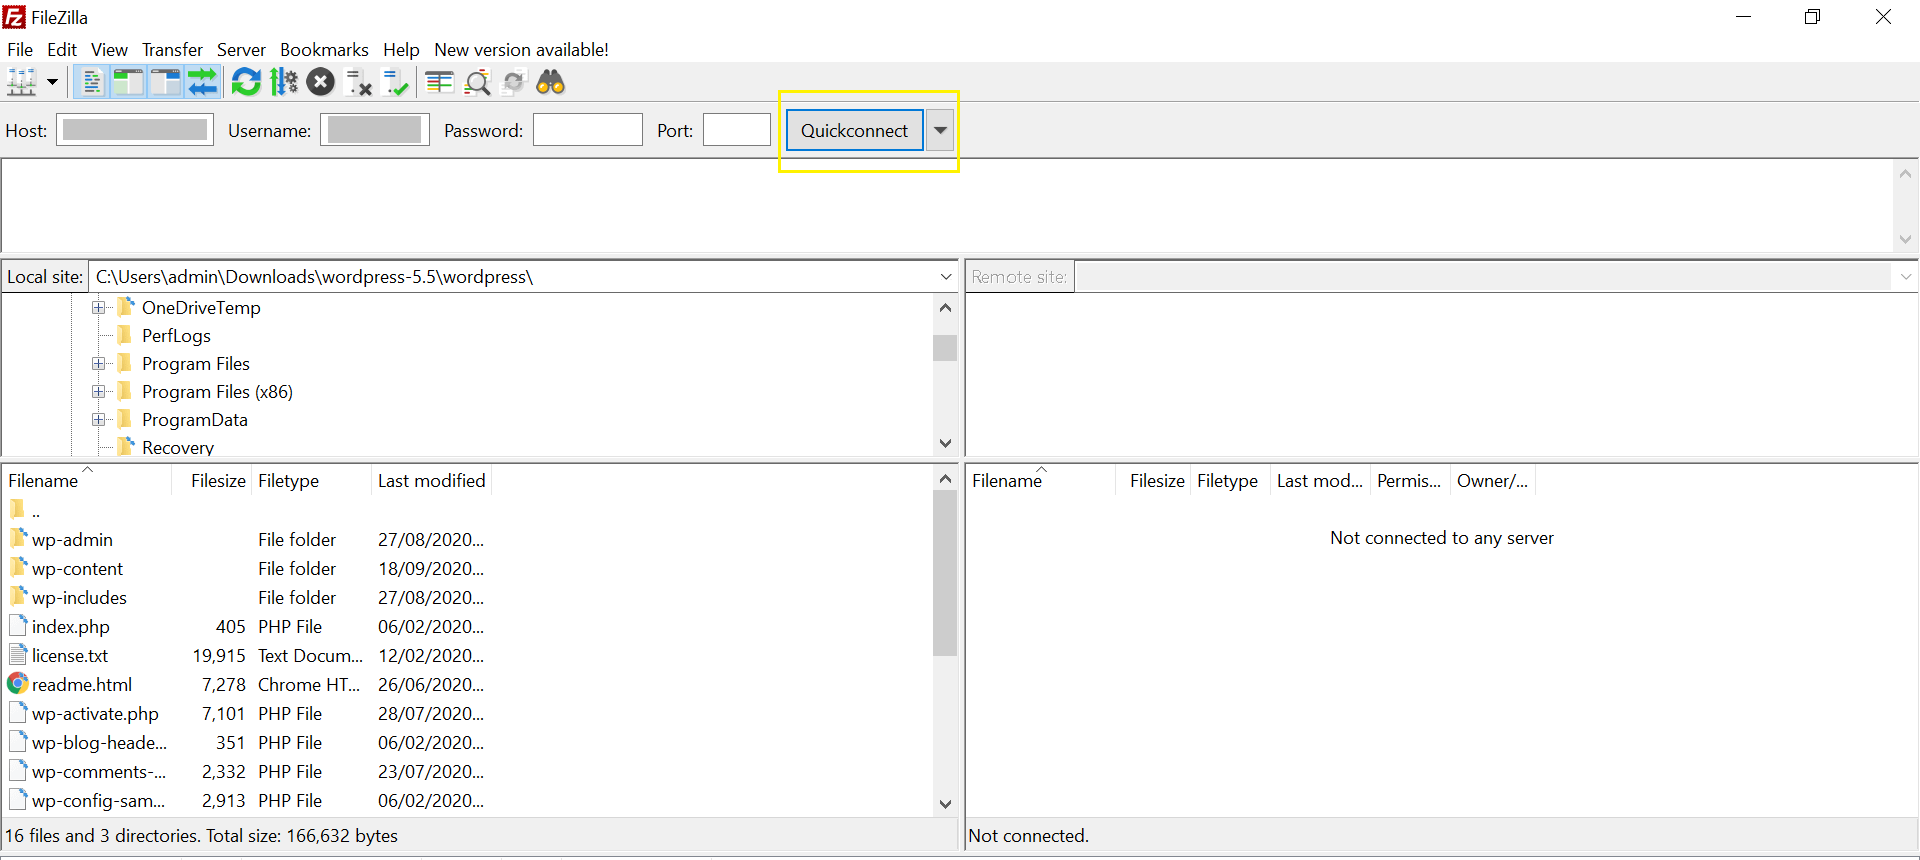 Connecting to a server via FTP with FileZilla.